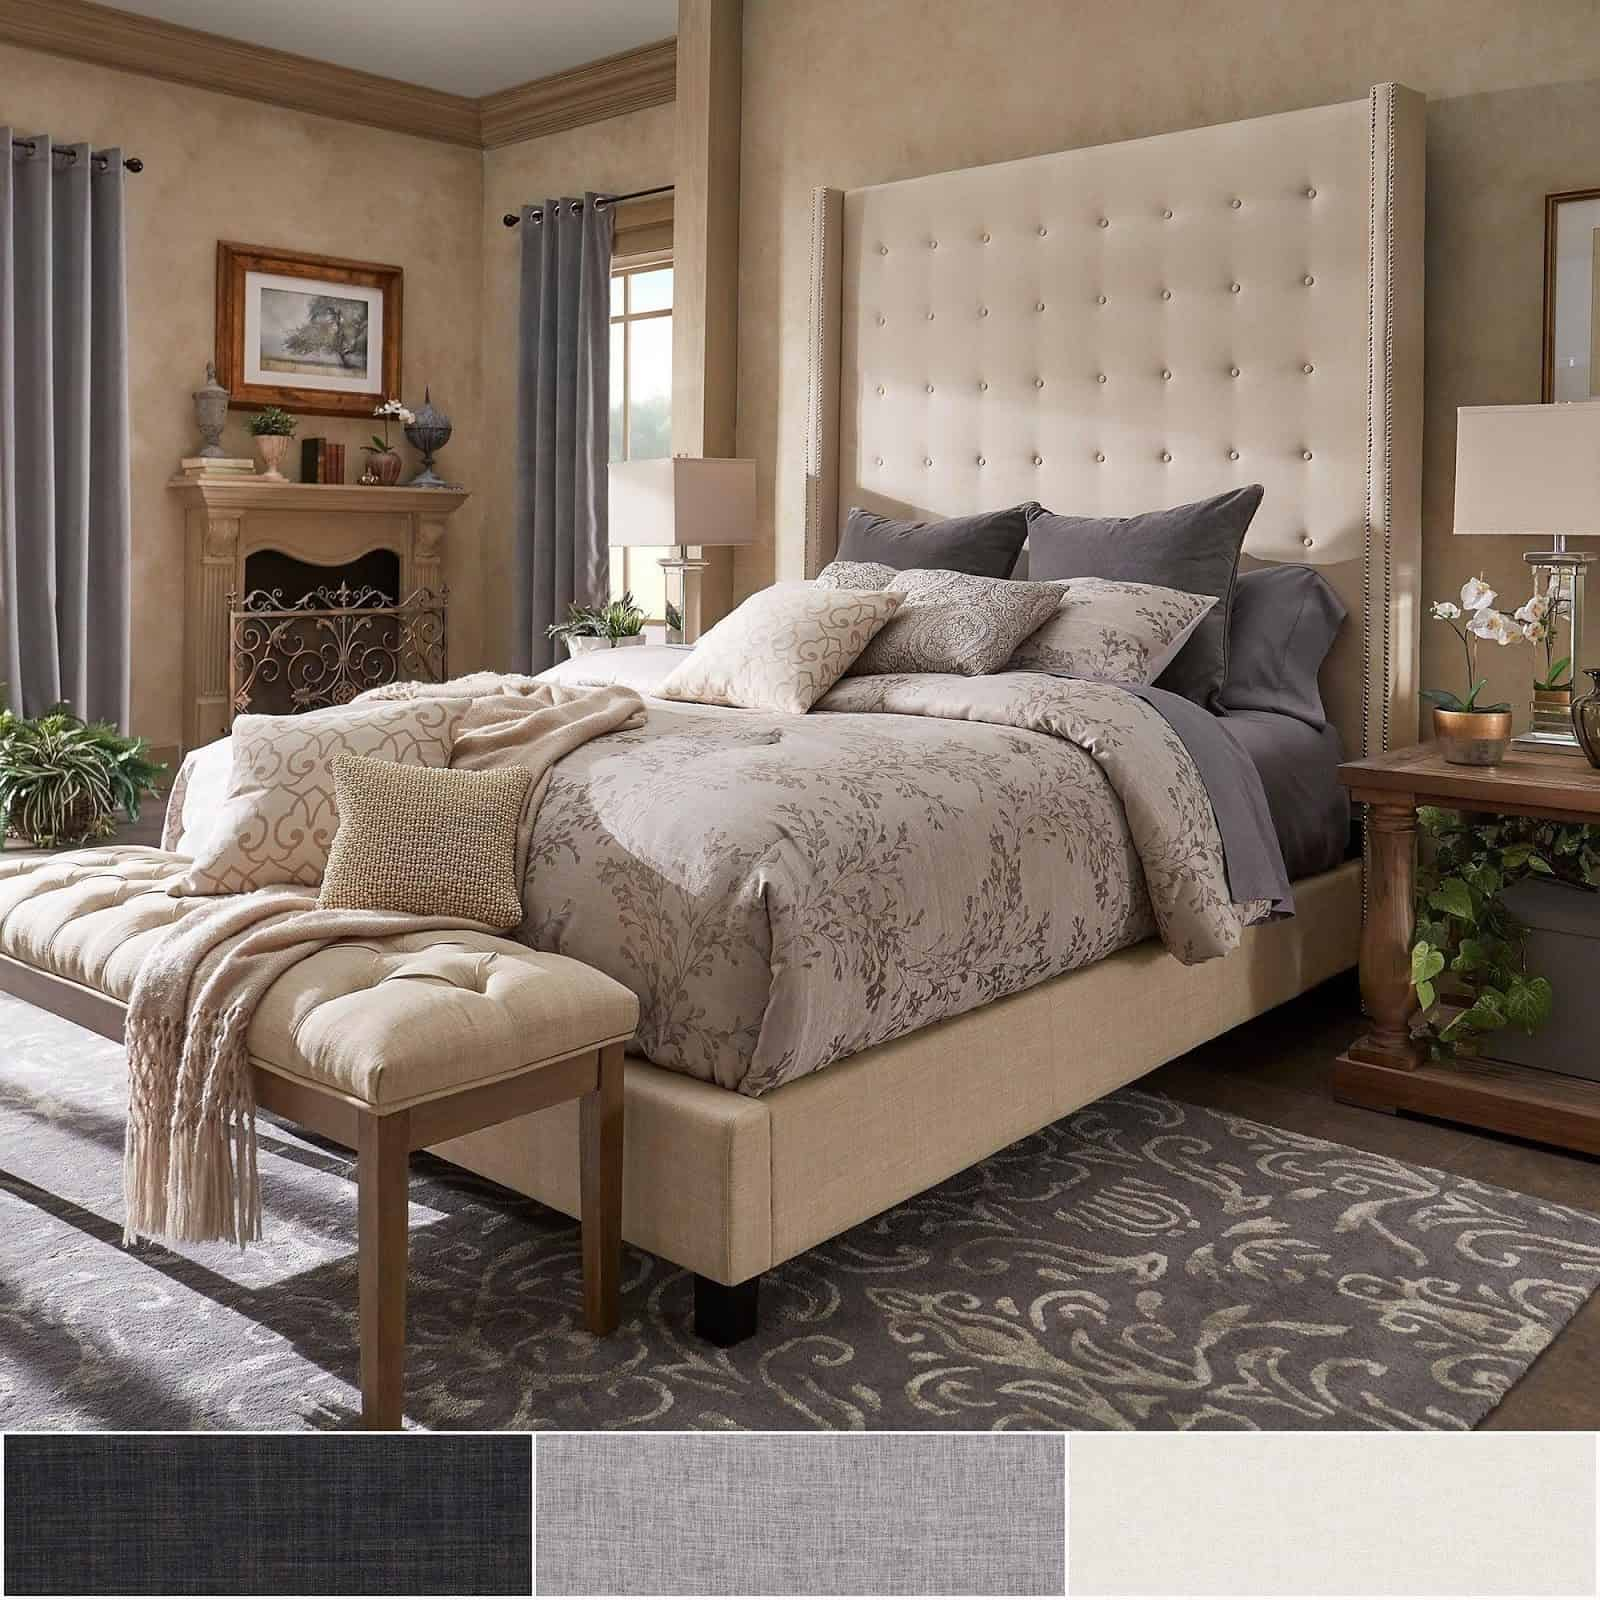 How To Raise The Height Of A Headboard Step By Step